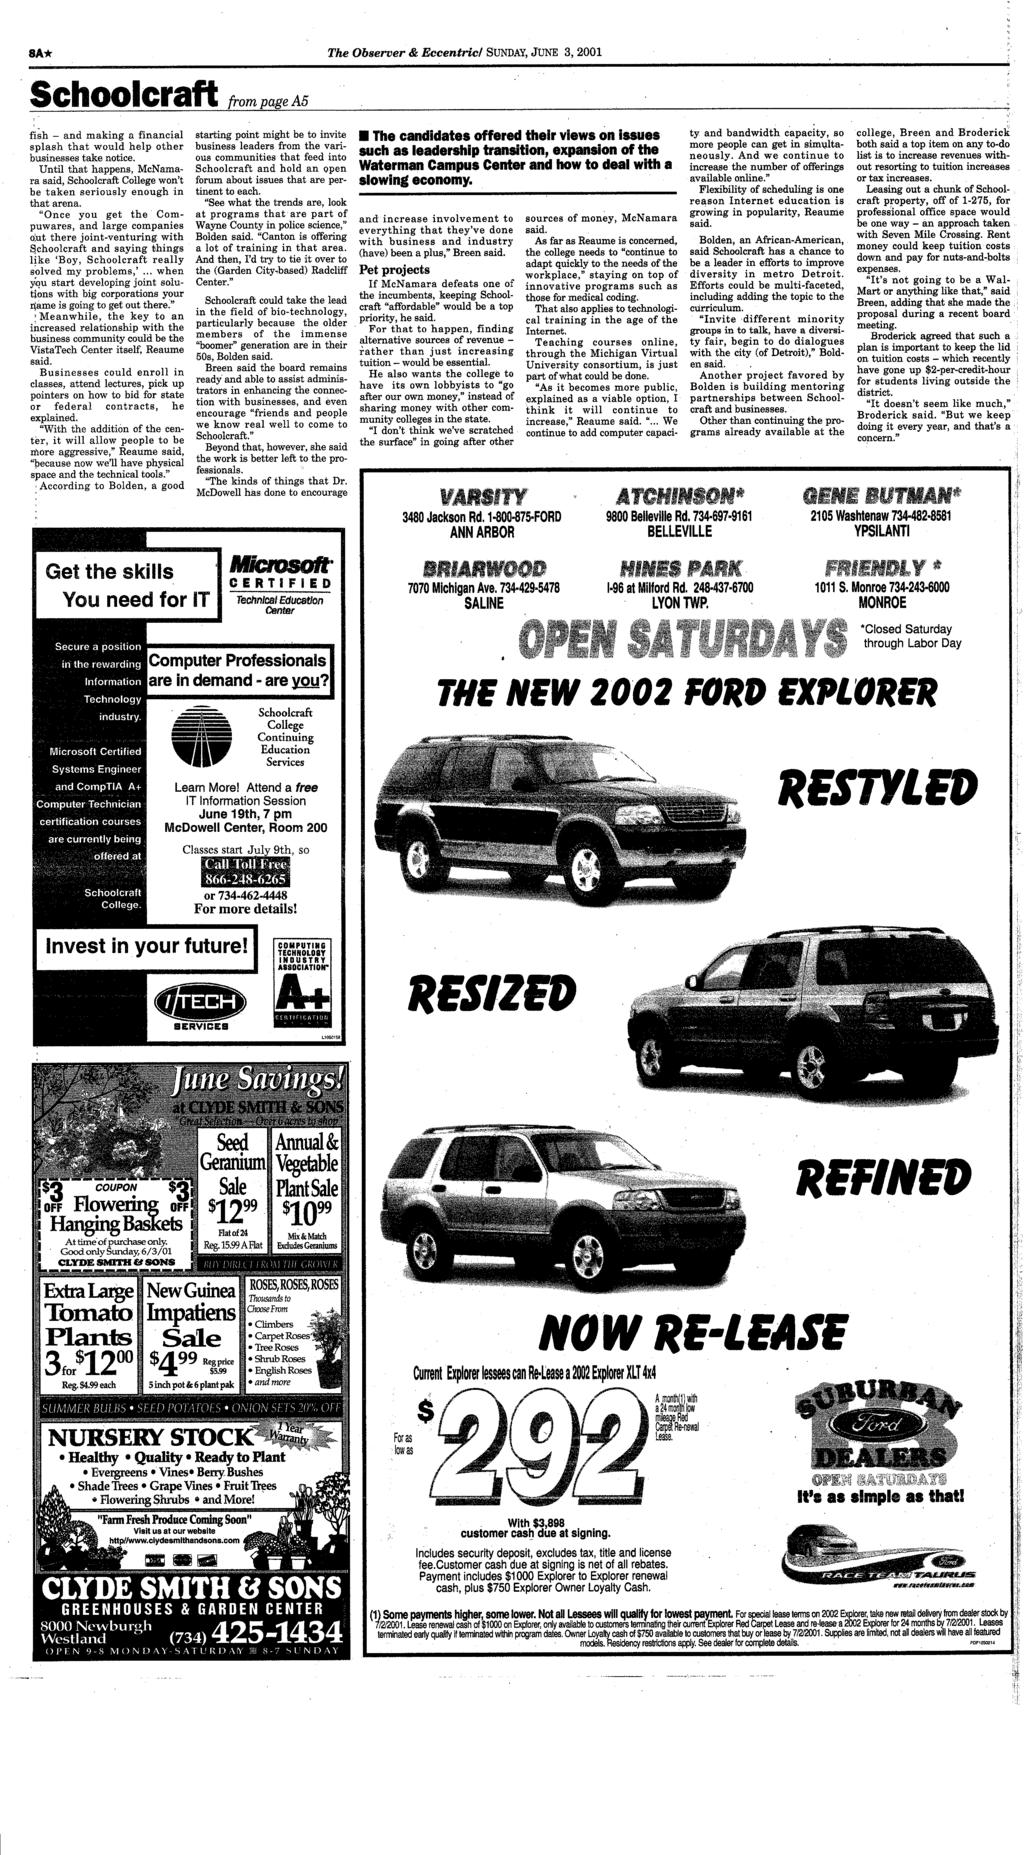 Canton Obaerue Your Hometown Newspaper Serving For 26 Years 1989 In Car Wiring Schematics Third Generation Fbody Message 8a The Observer Eccentric Sunday June 3 2001 Schoolcraft From Page